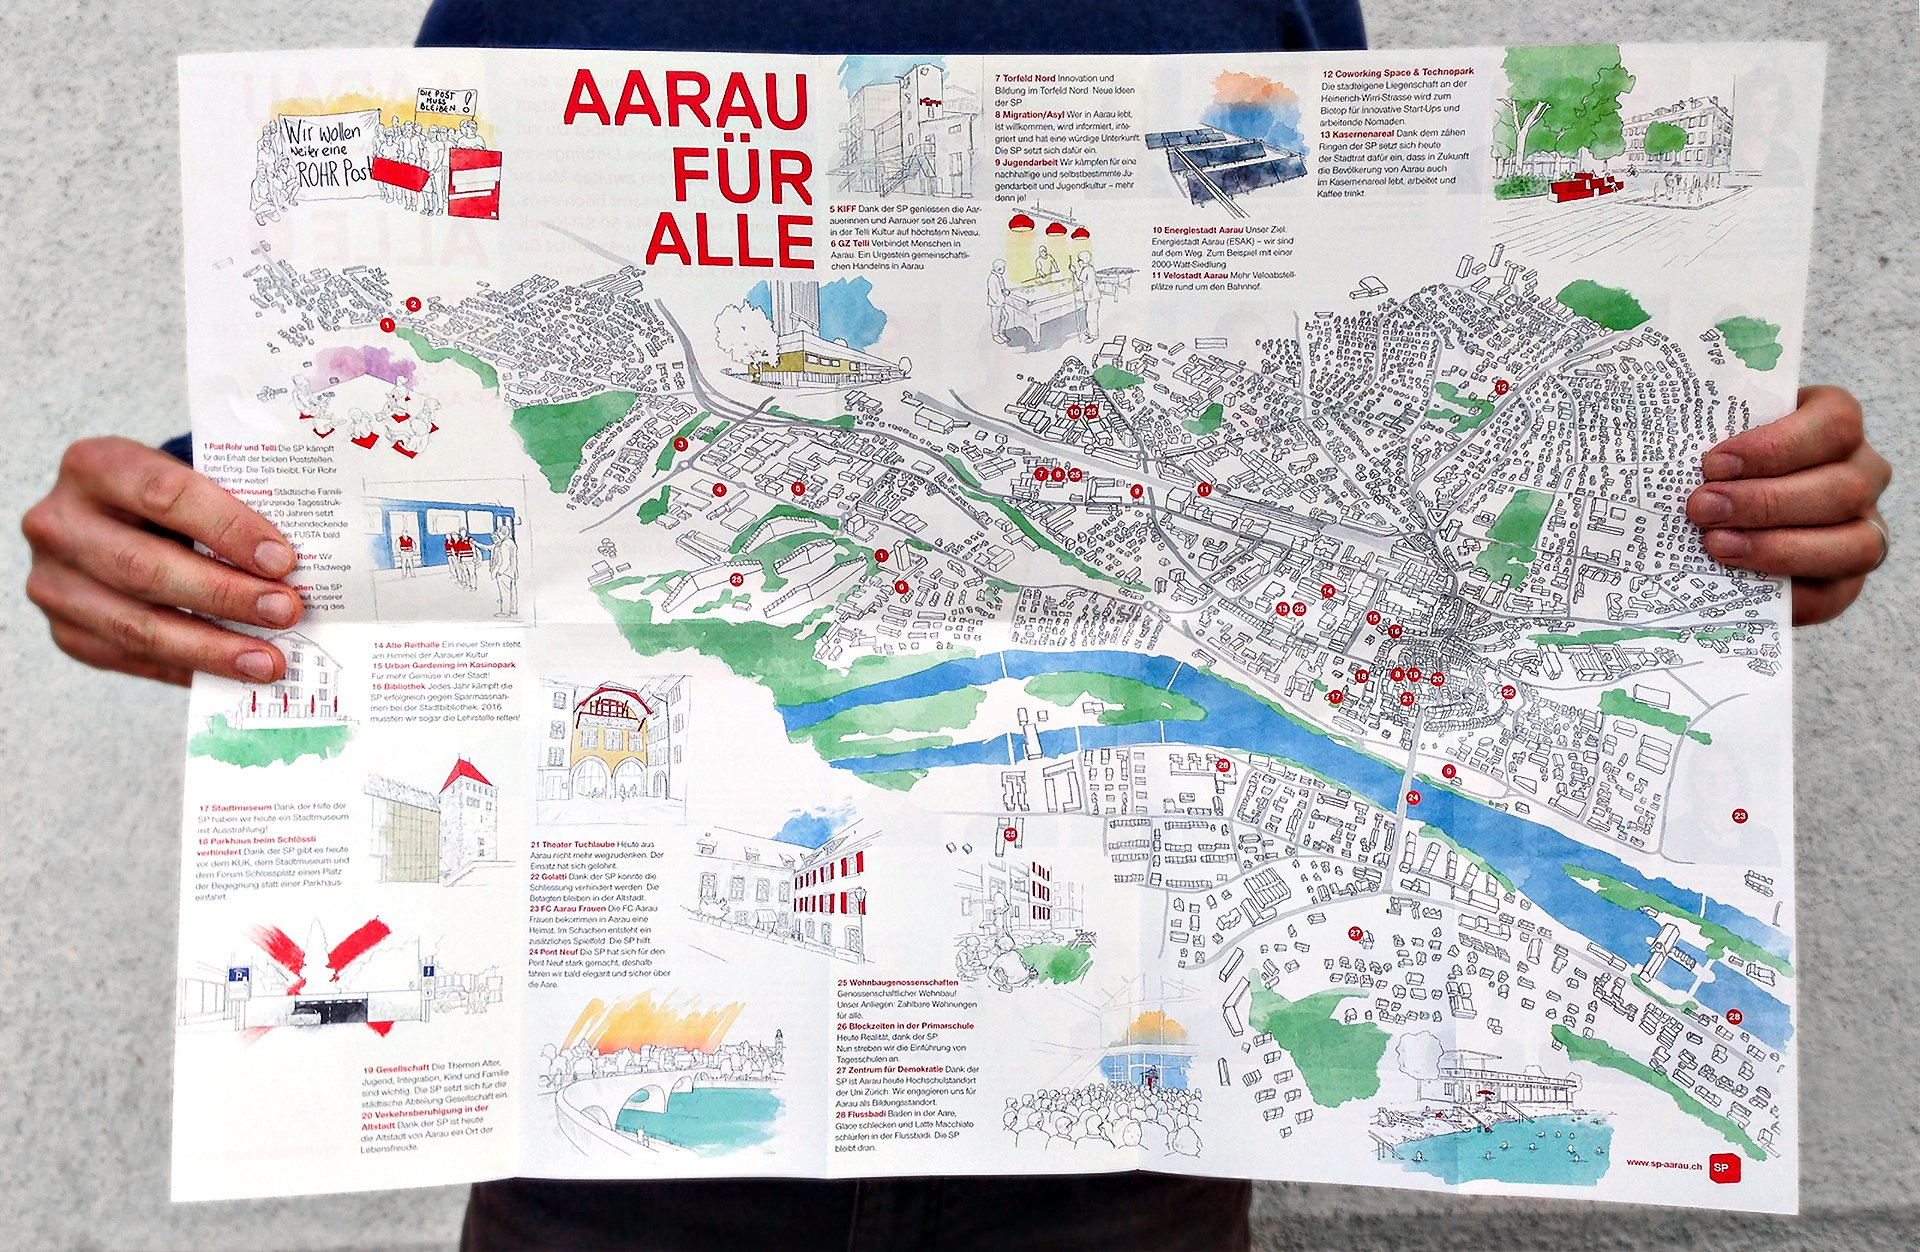 SP Aarau, Stadtkarte, City Map, illustration, ikonaut